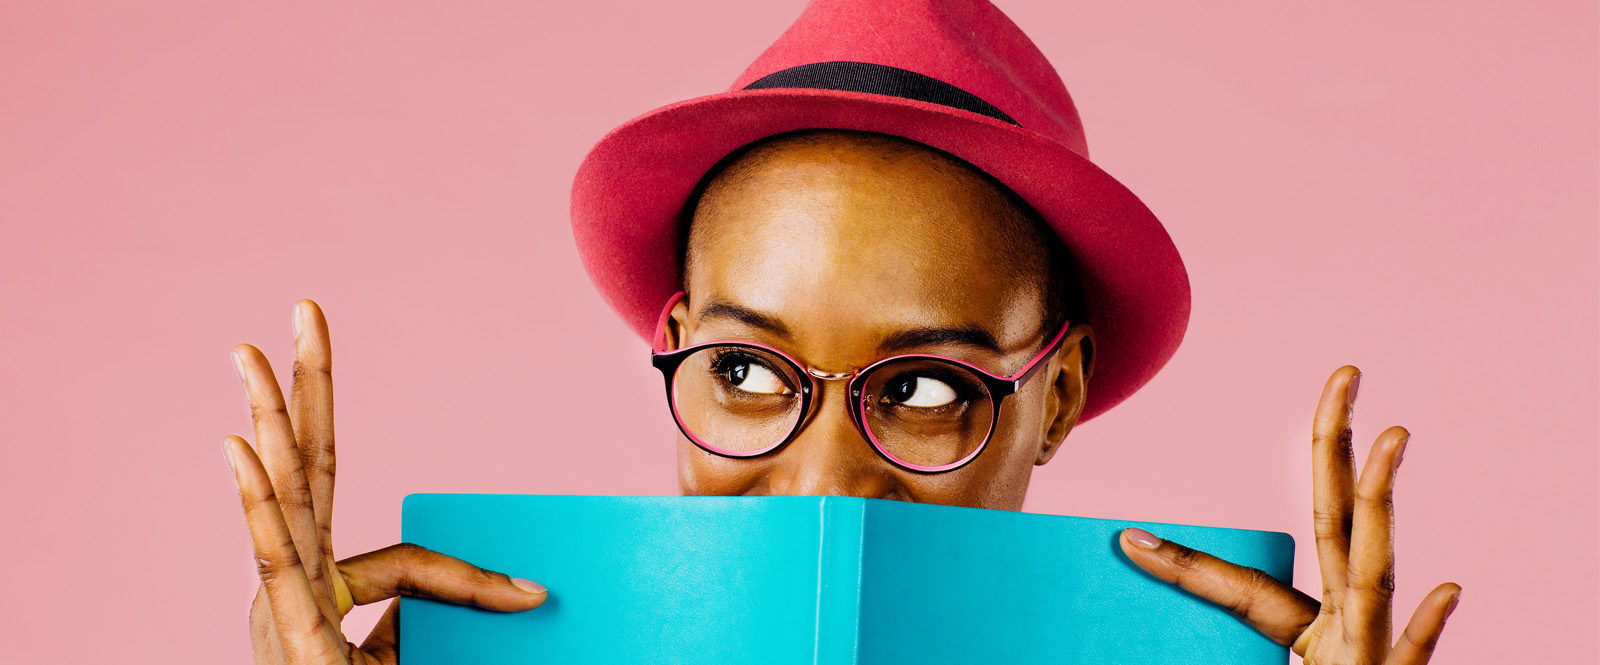 Woman wearing glasses peeking out from behind book